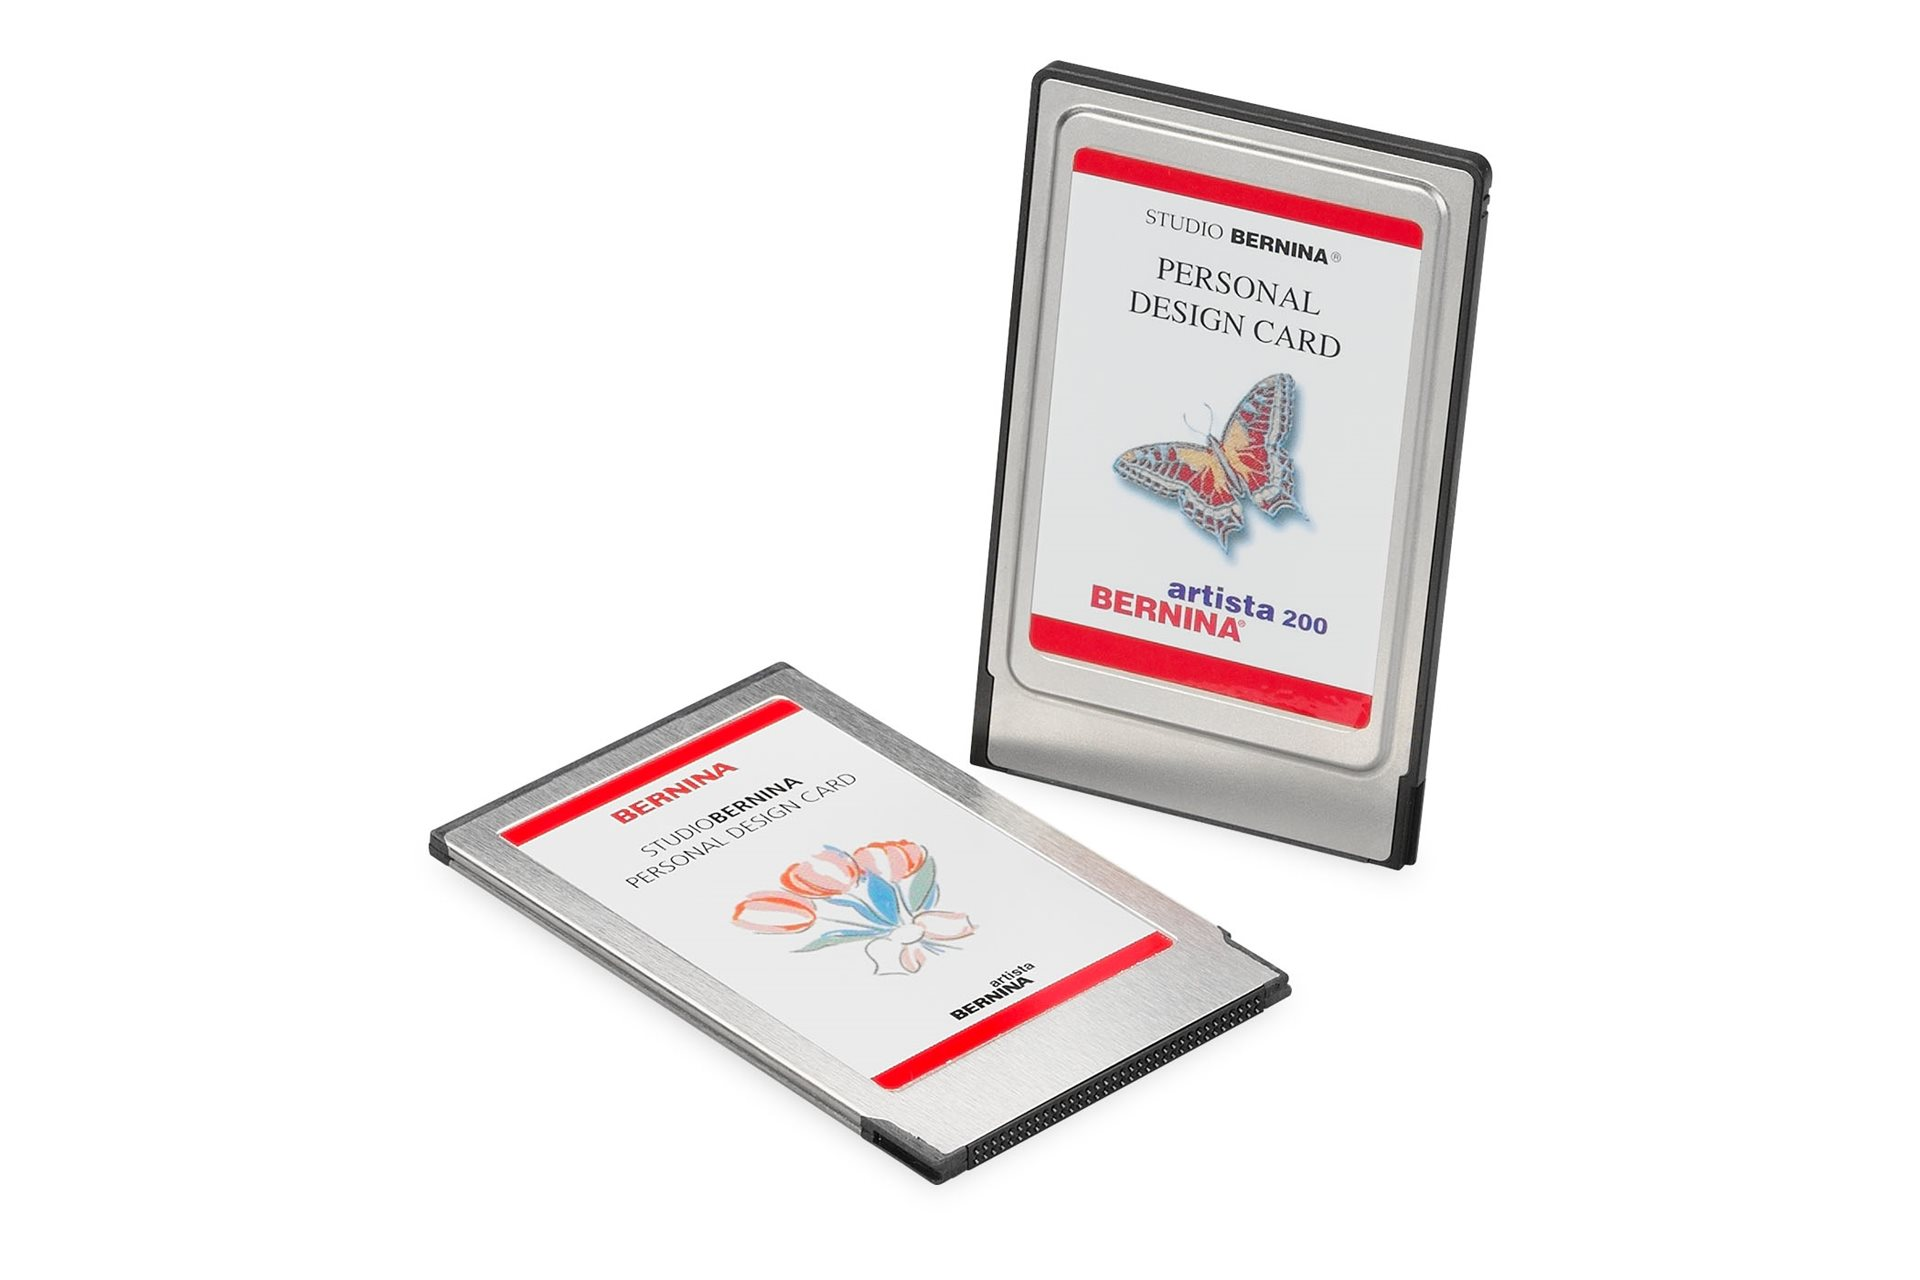 download Digitale Konvergenz und Kompetenzenmanagement